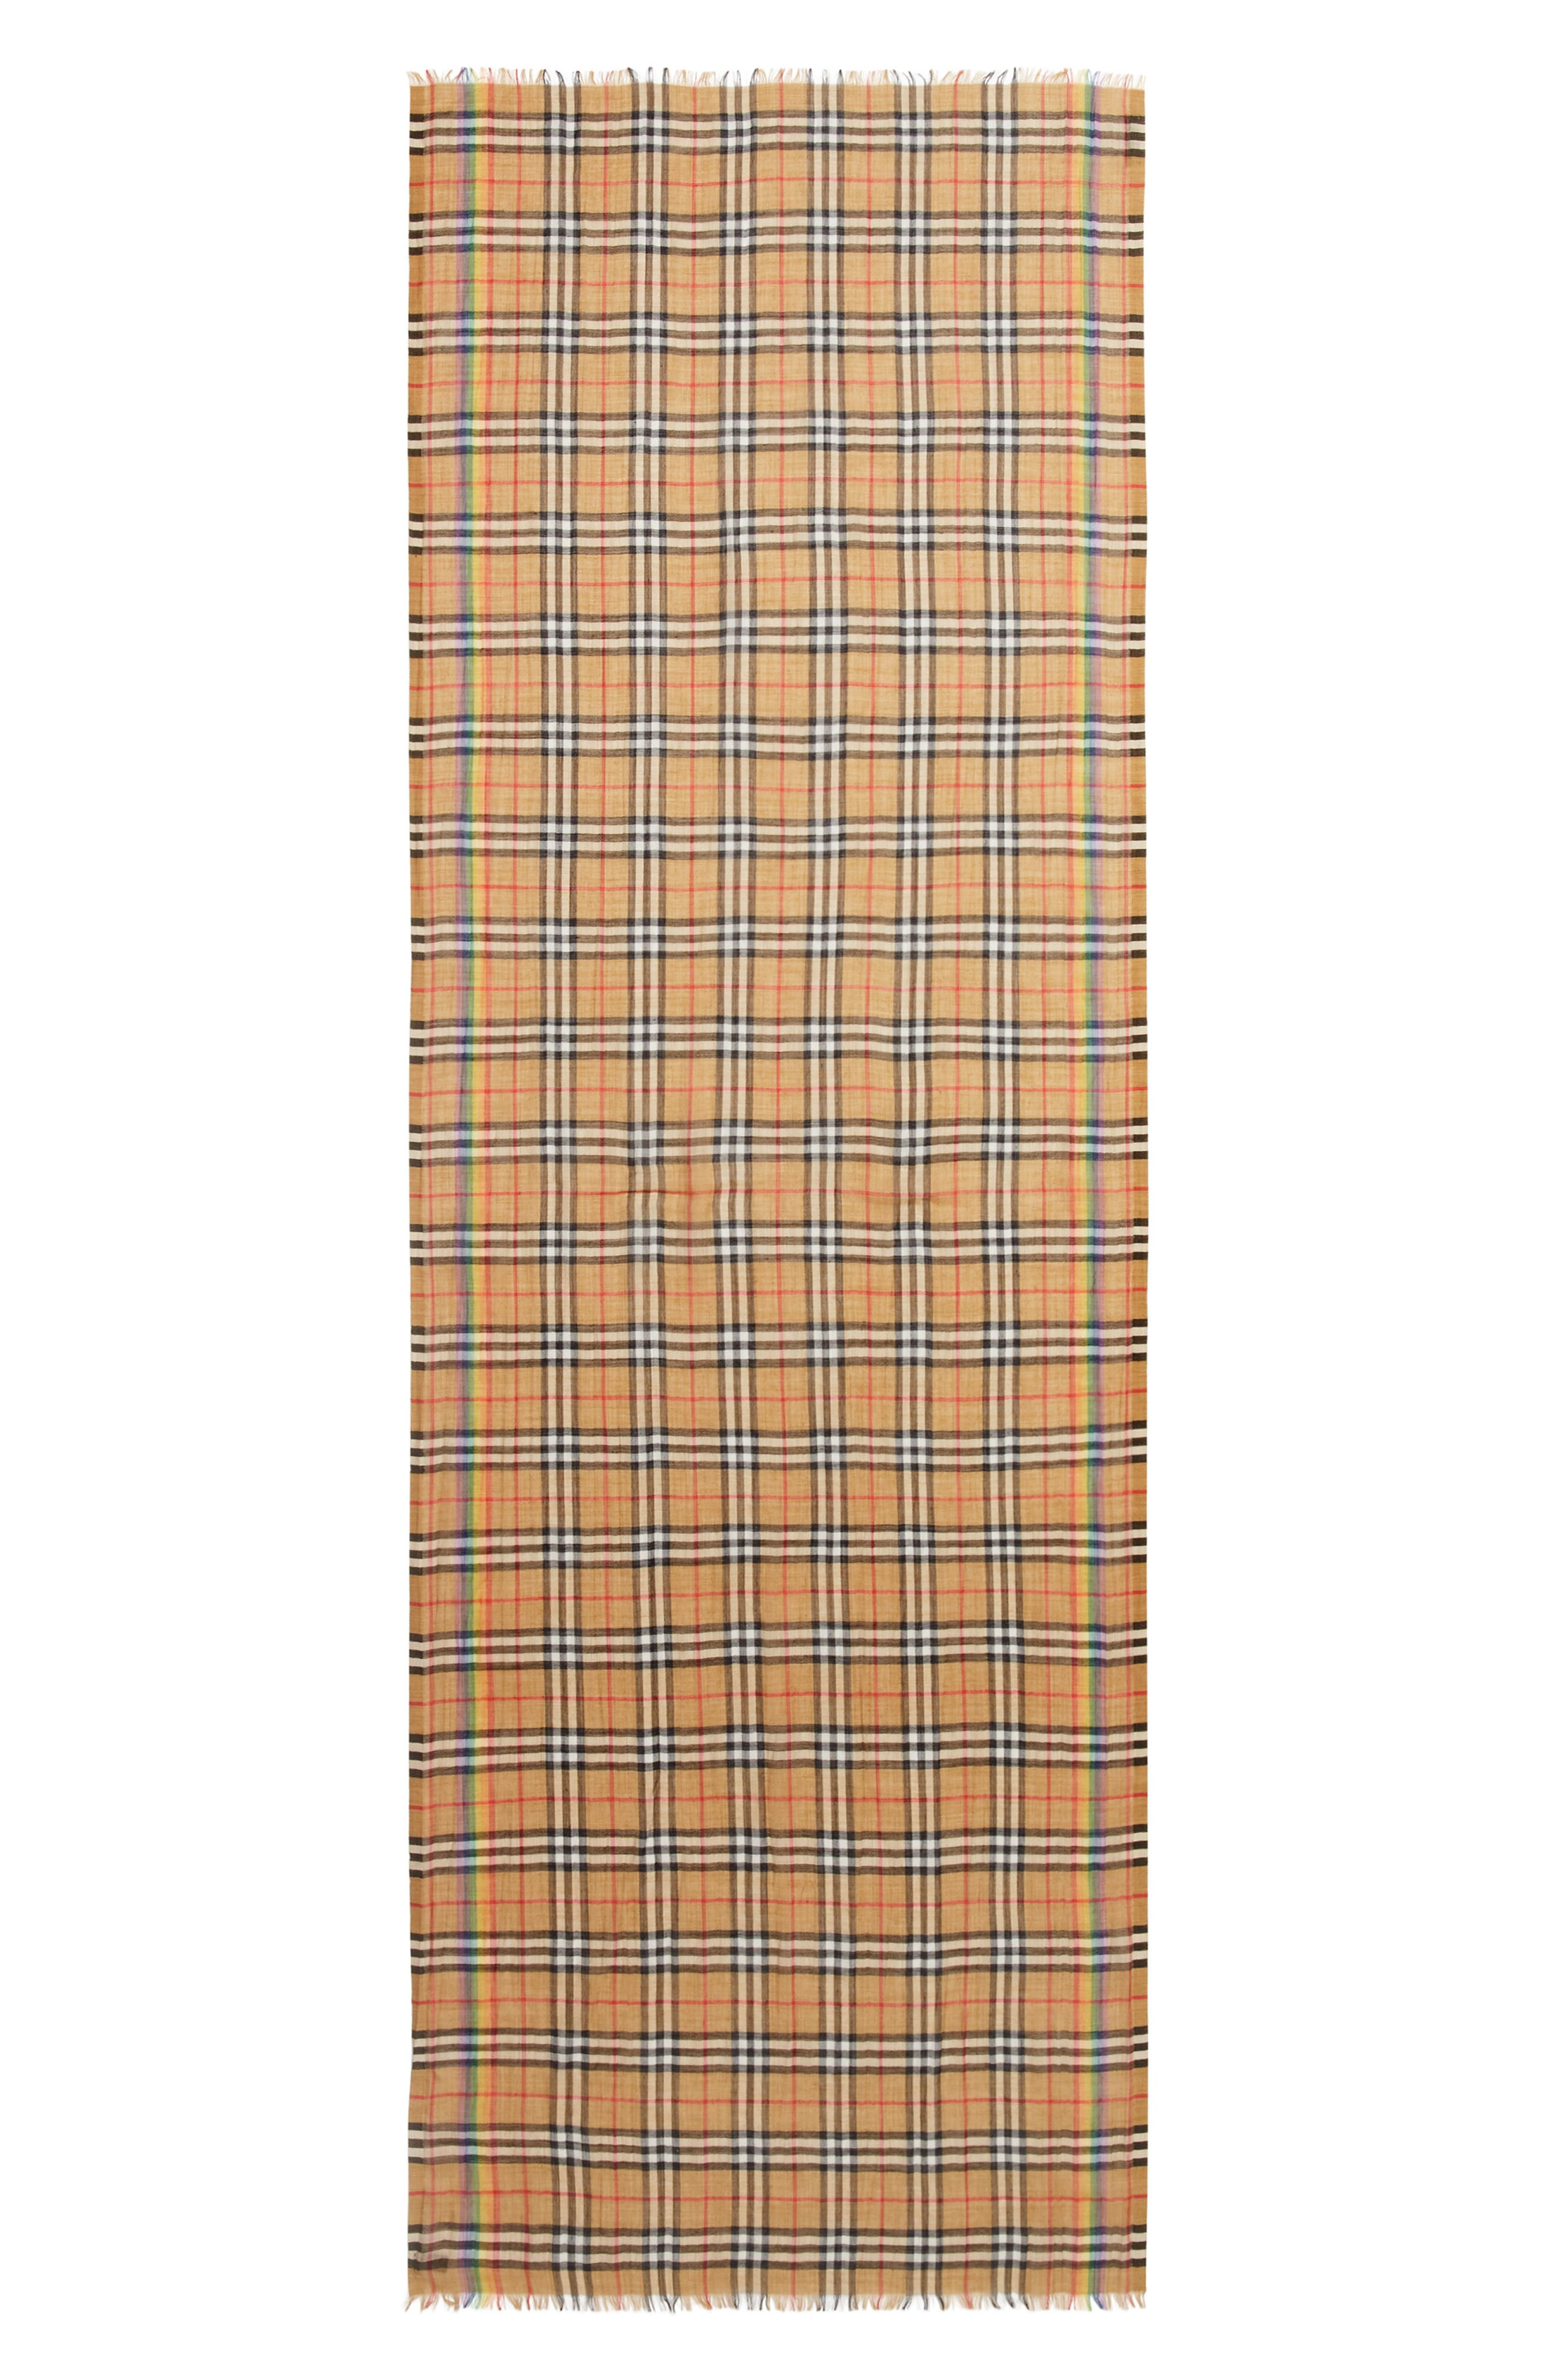 BURBERRY,                             Rainbow Stripe Vintage Check Scarf,                             Main thumbnail 1, color,                             ANTIQUE YELLOW/ RAINBOW